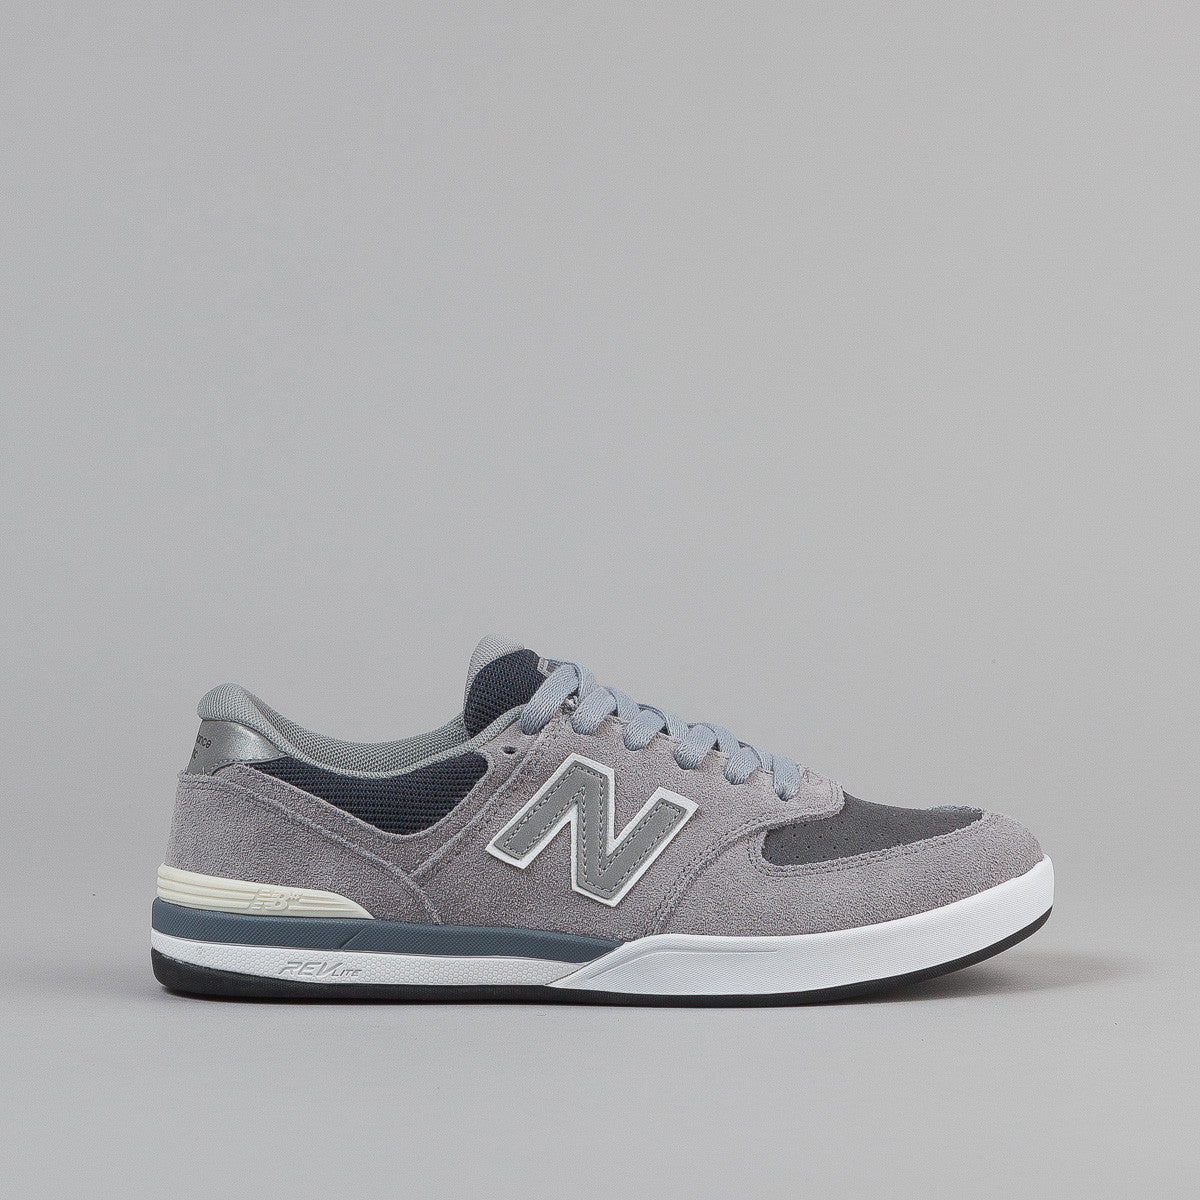 New Balance Numeric  Logan S 636 Shoes